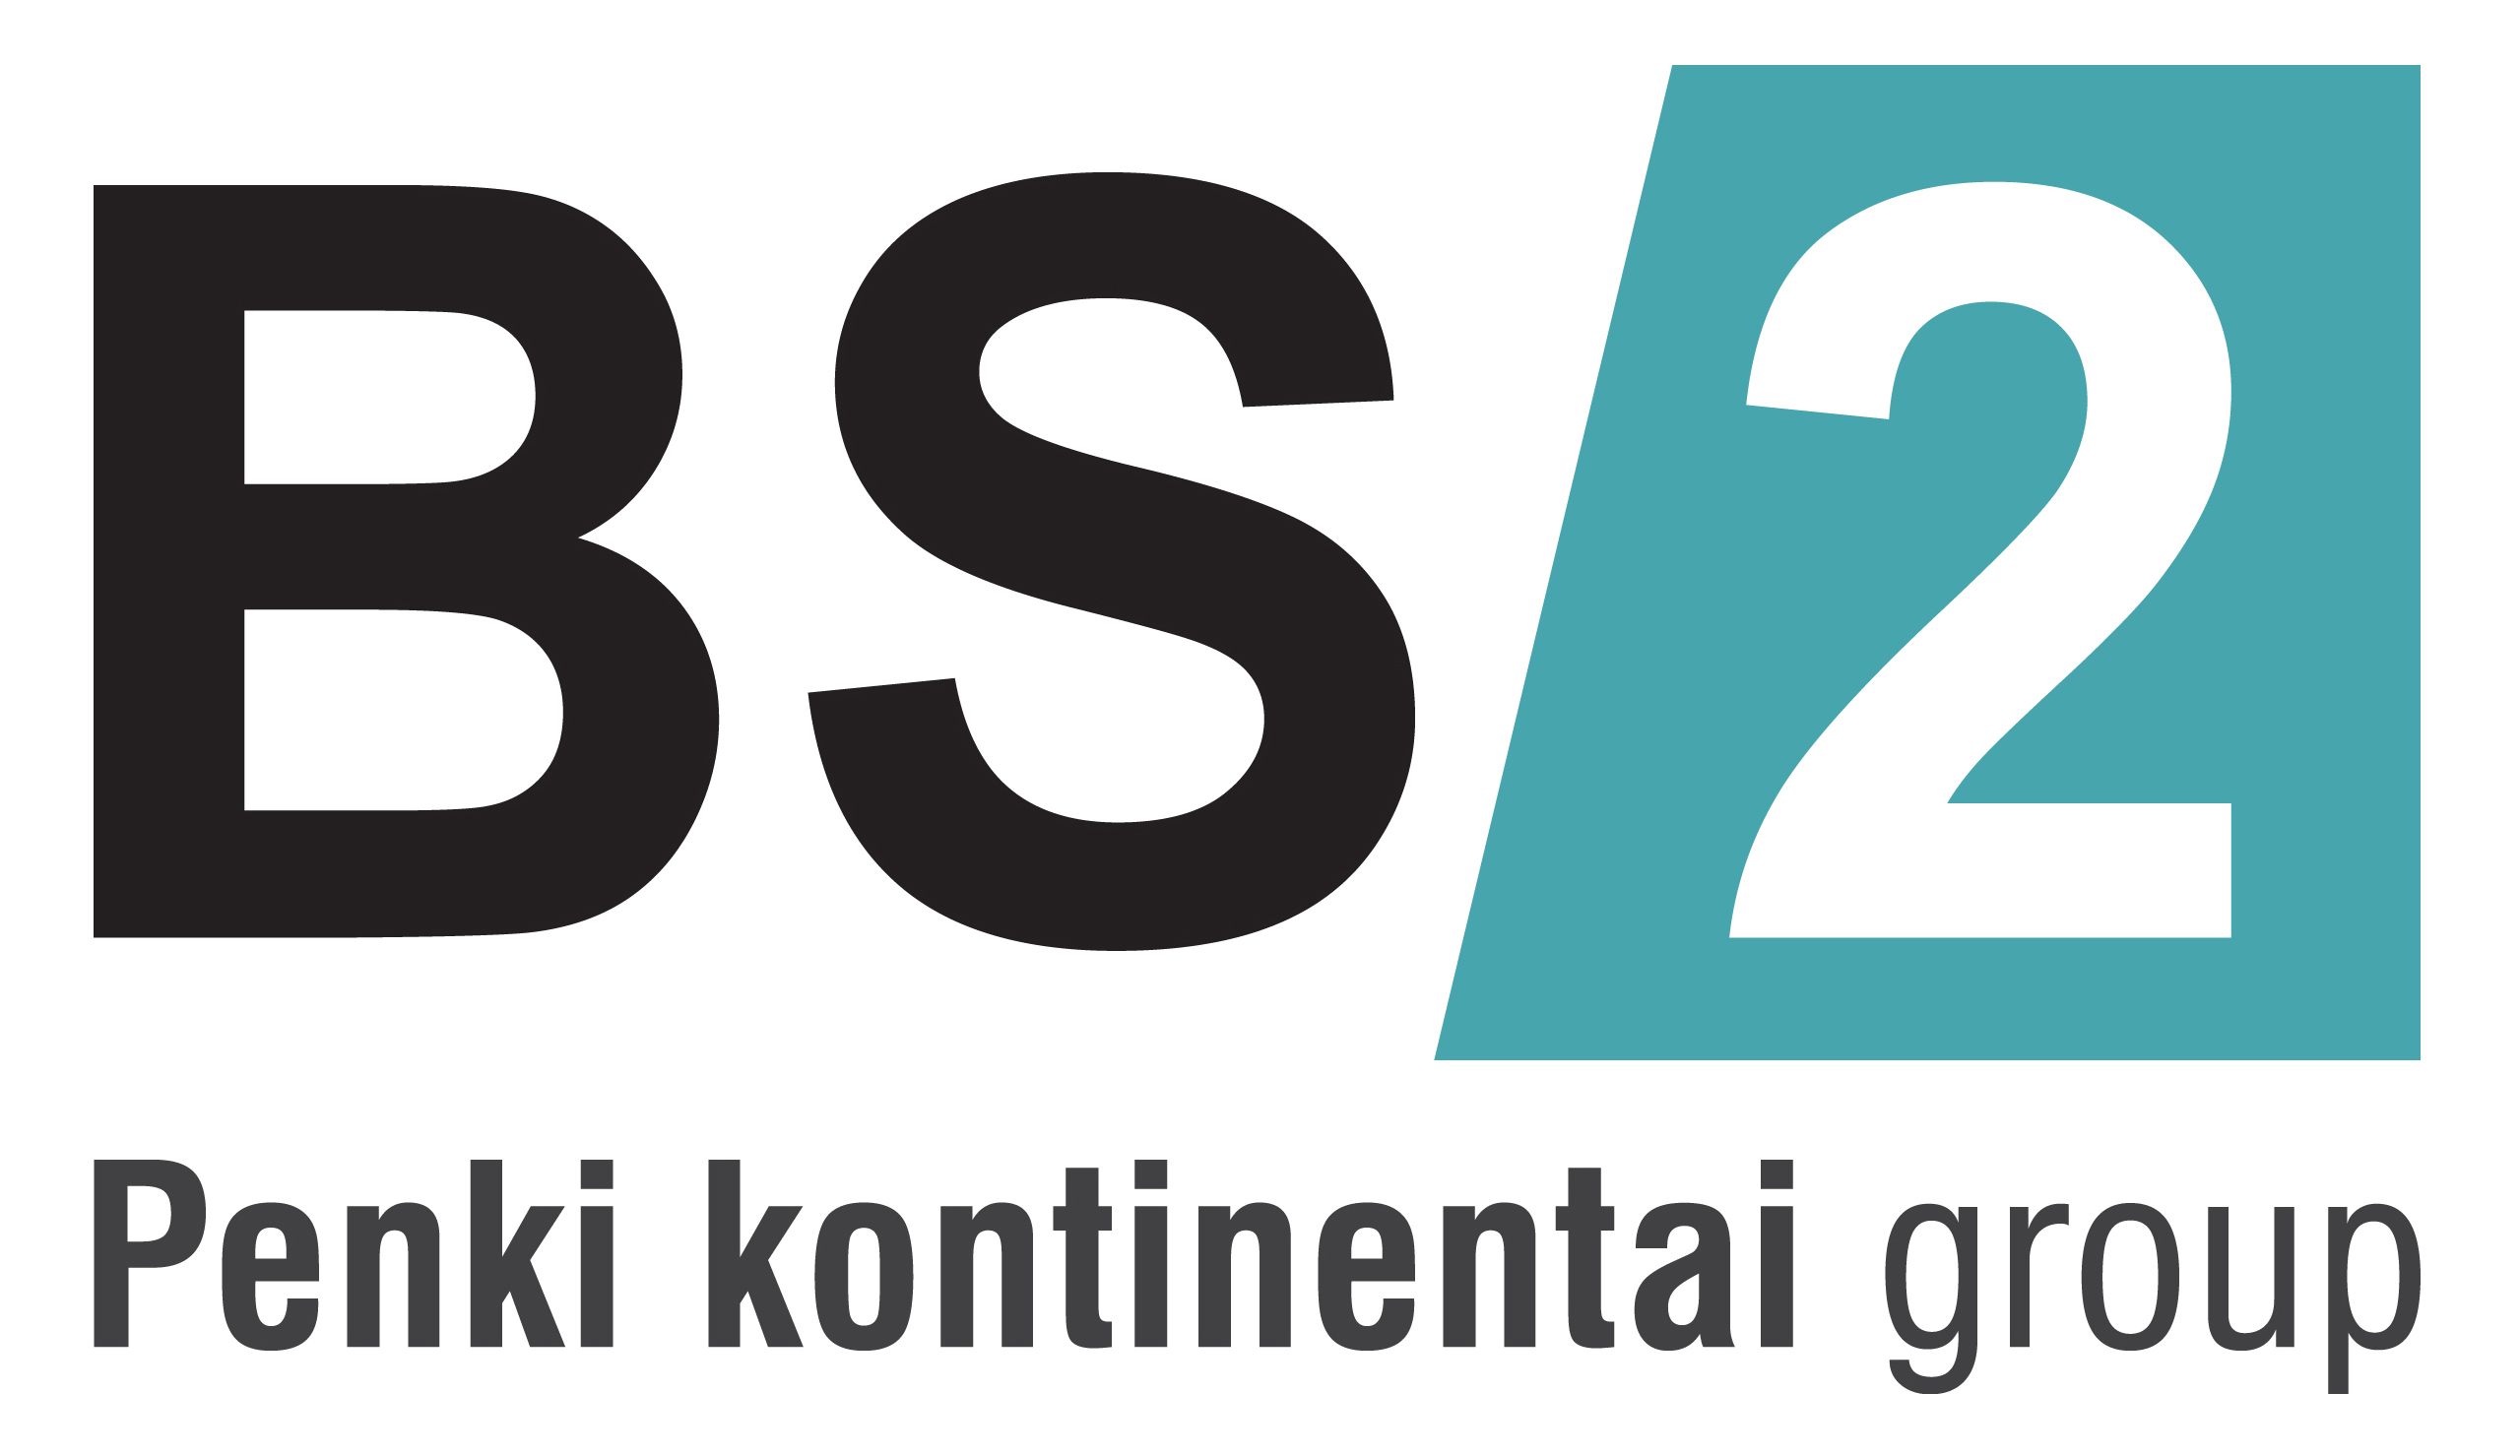 BS/2 Belarus is Celebrating the Anniversary of Two Years